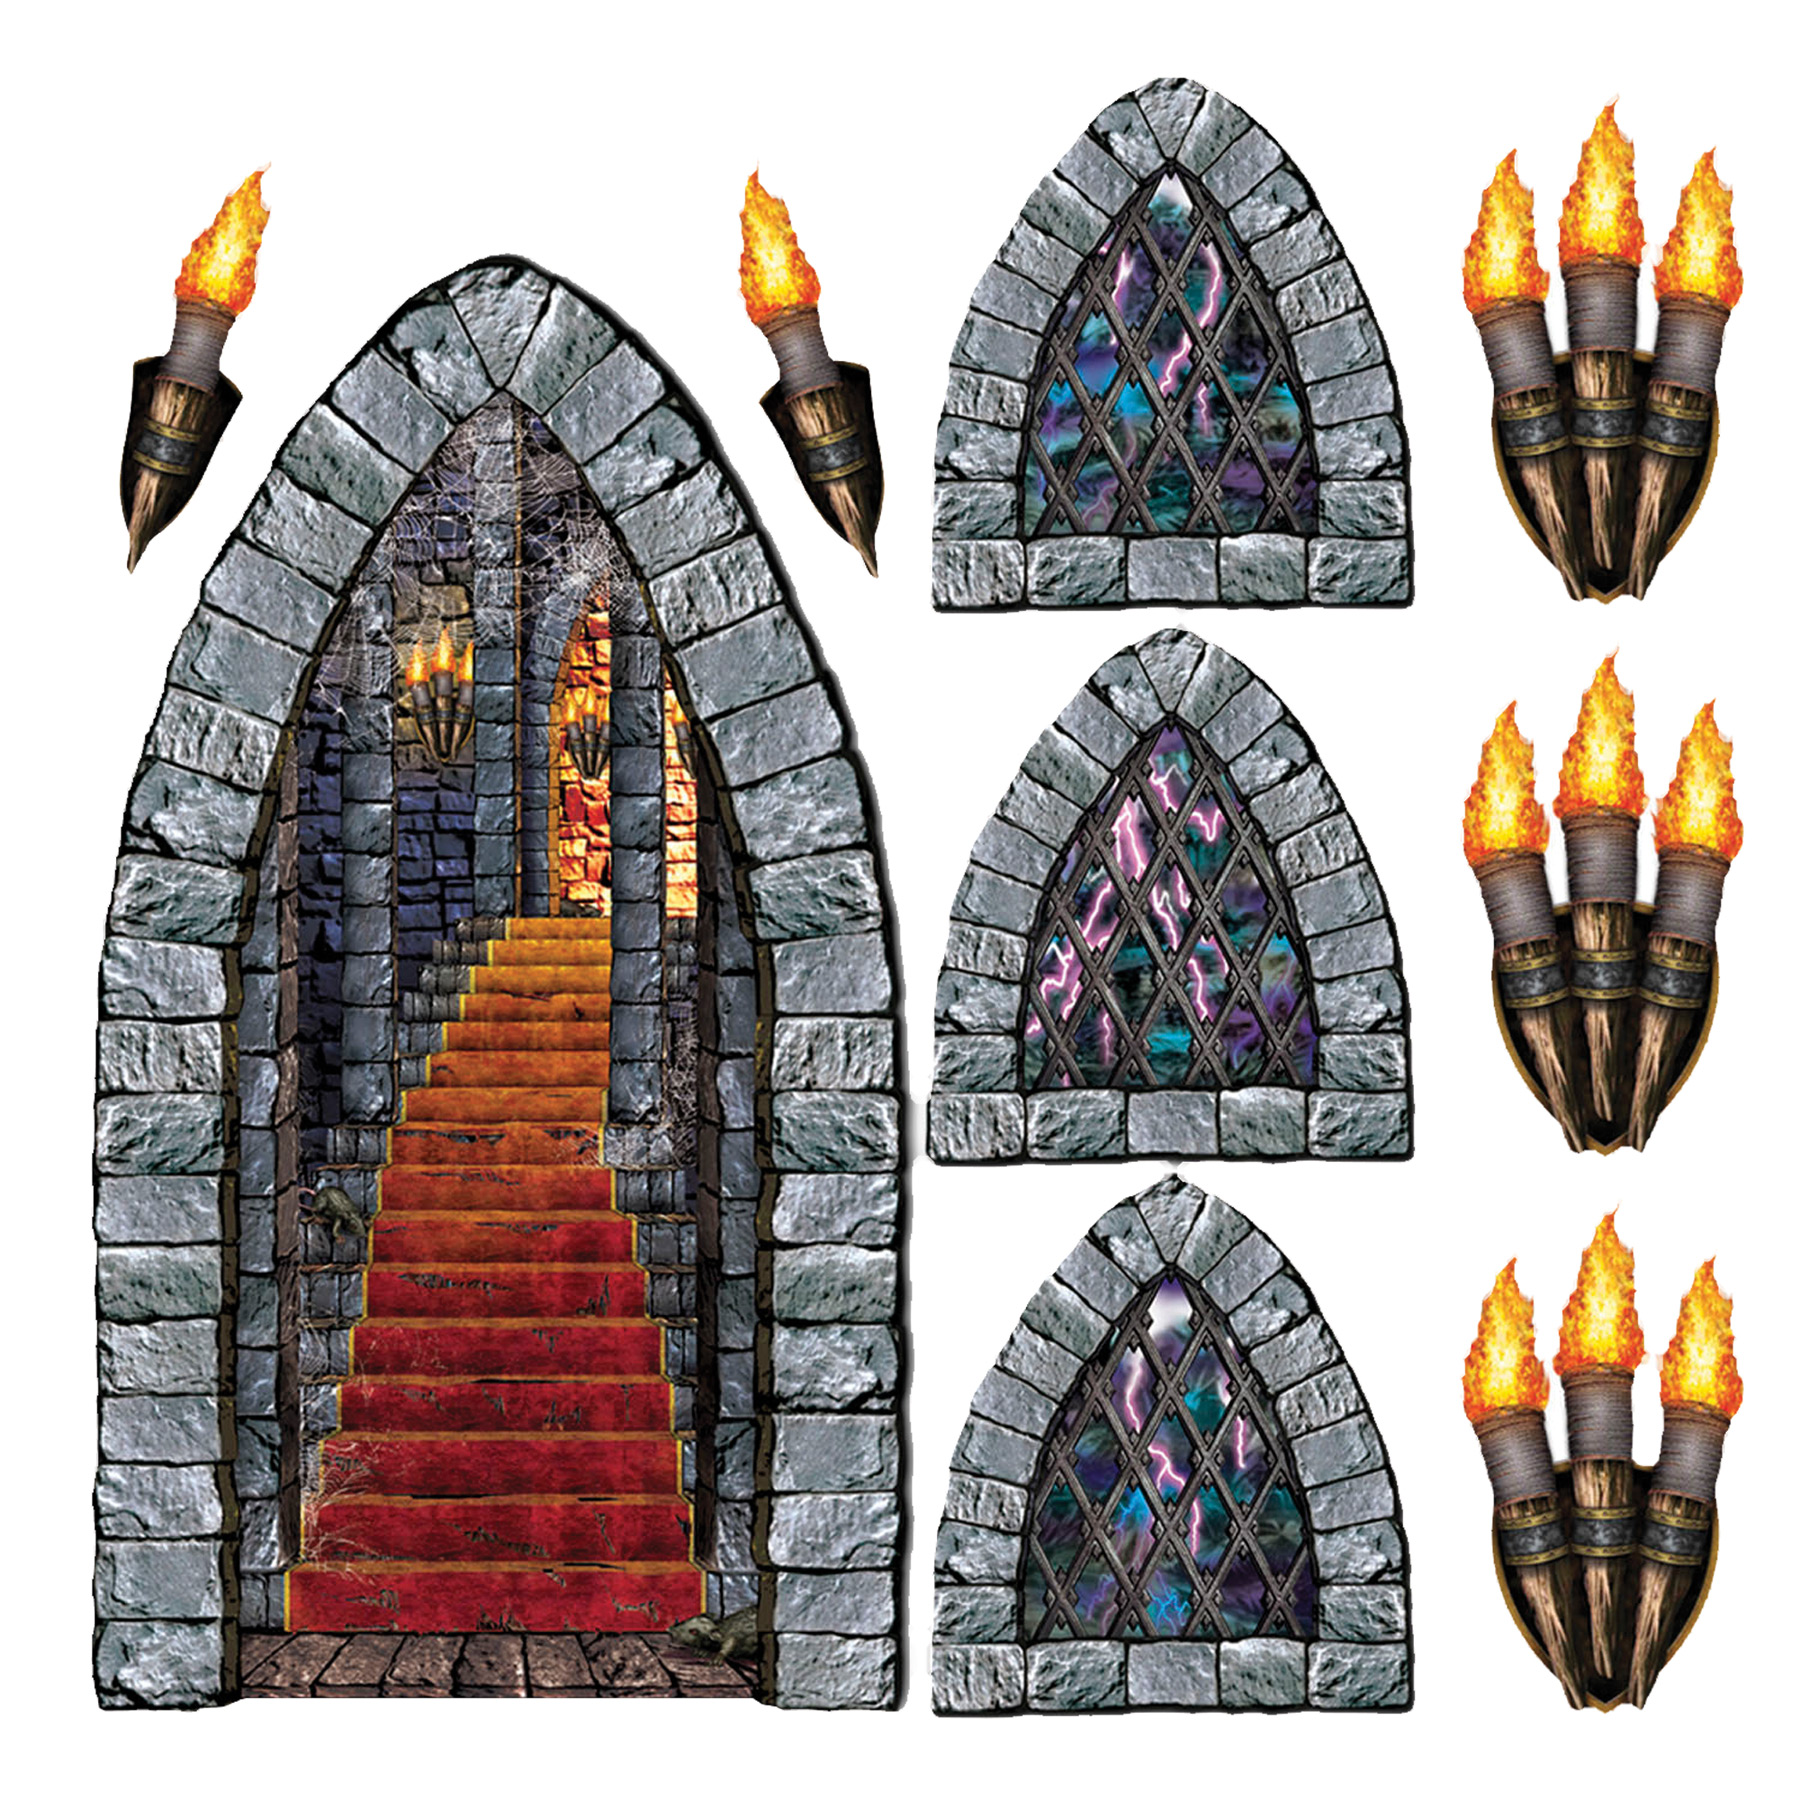 Featured Image for Stairway Window Torch Props